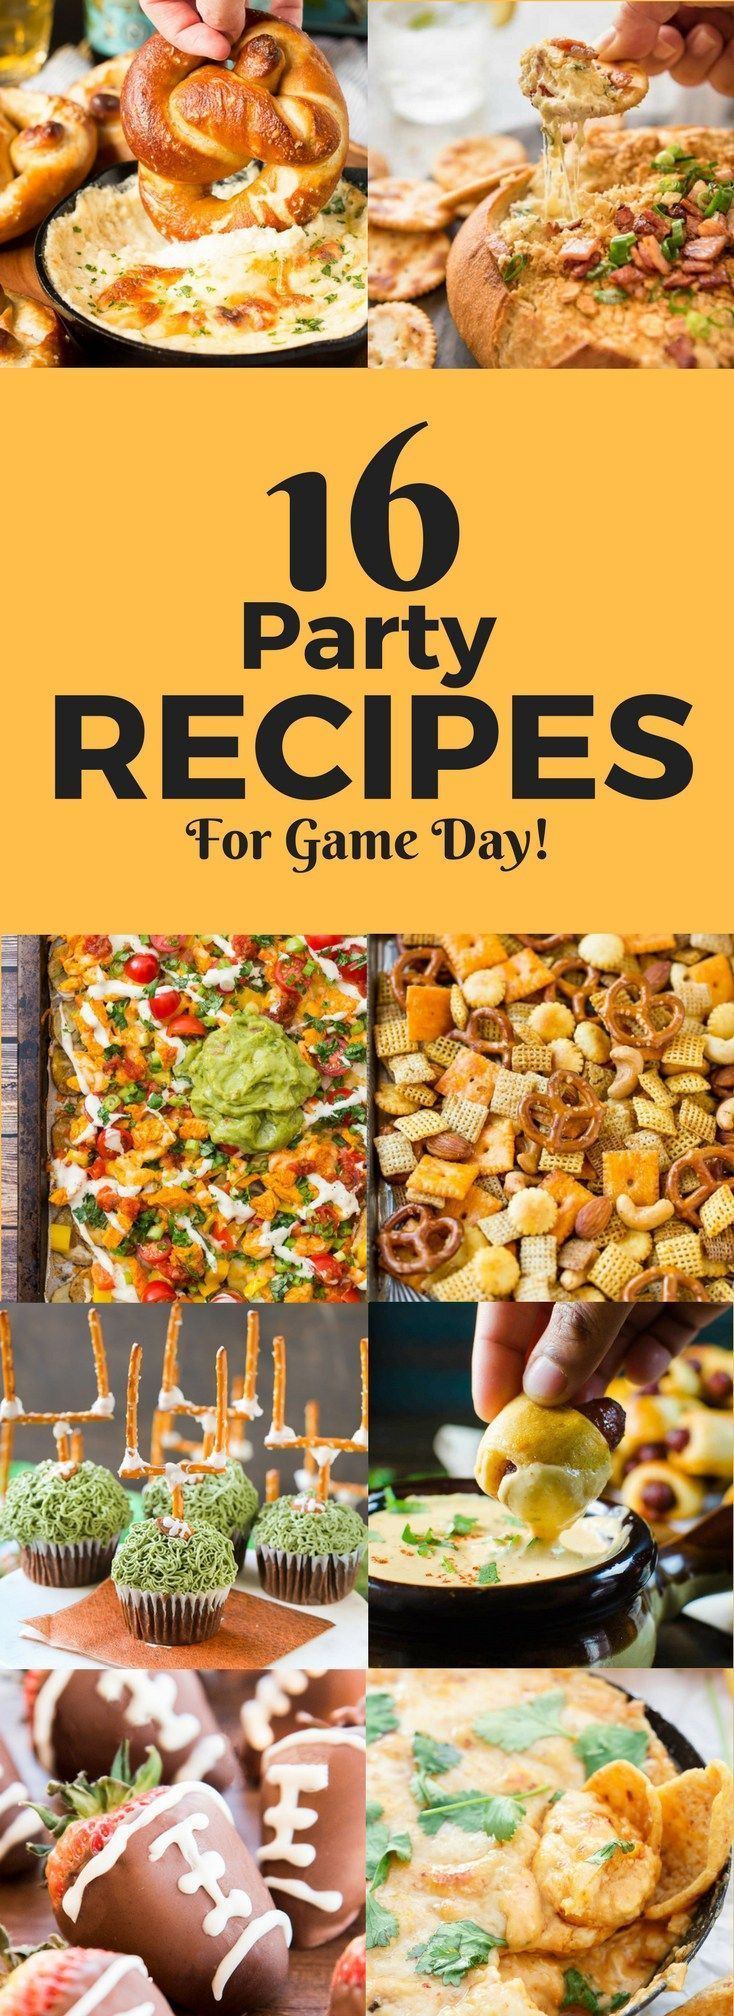 16 PARTY RECIPES FOR GAME DAY | Party appetizers | Football Party Food | Superbowl Appetizers